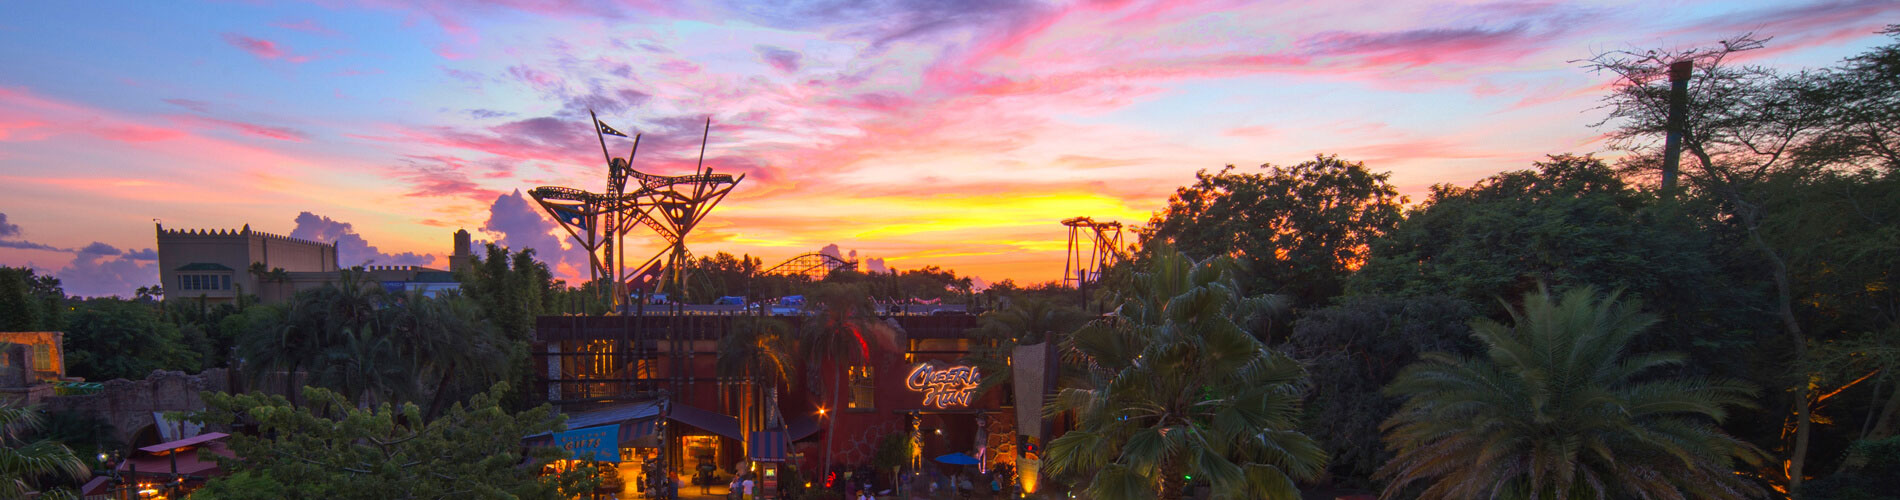 Group Events at Busch Gardens Tampa Bay